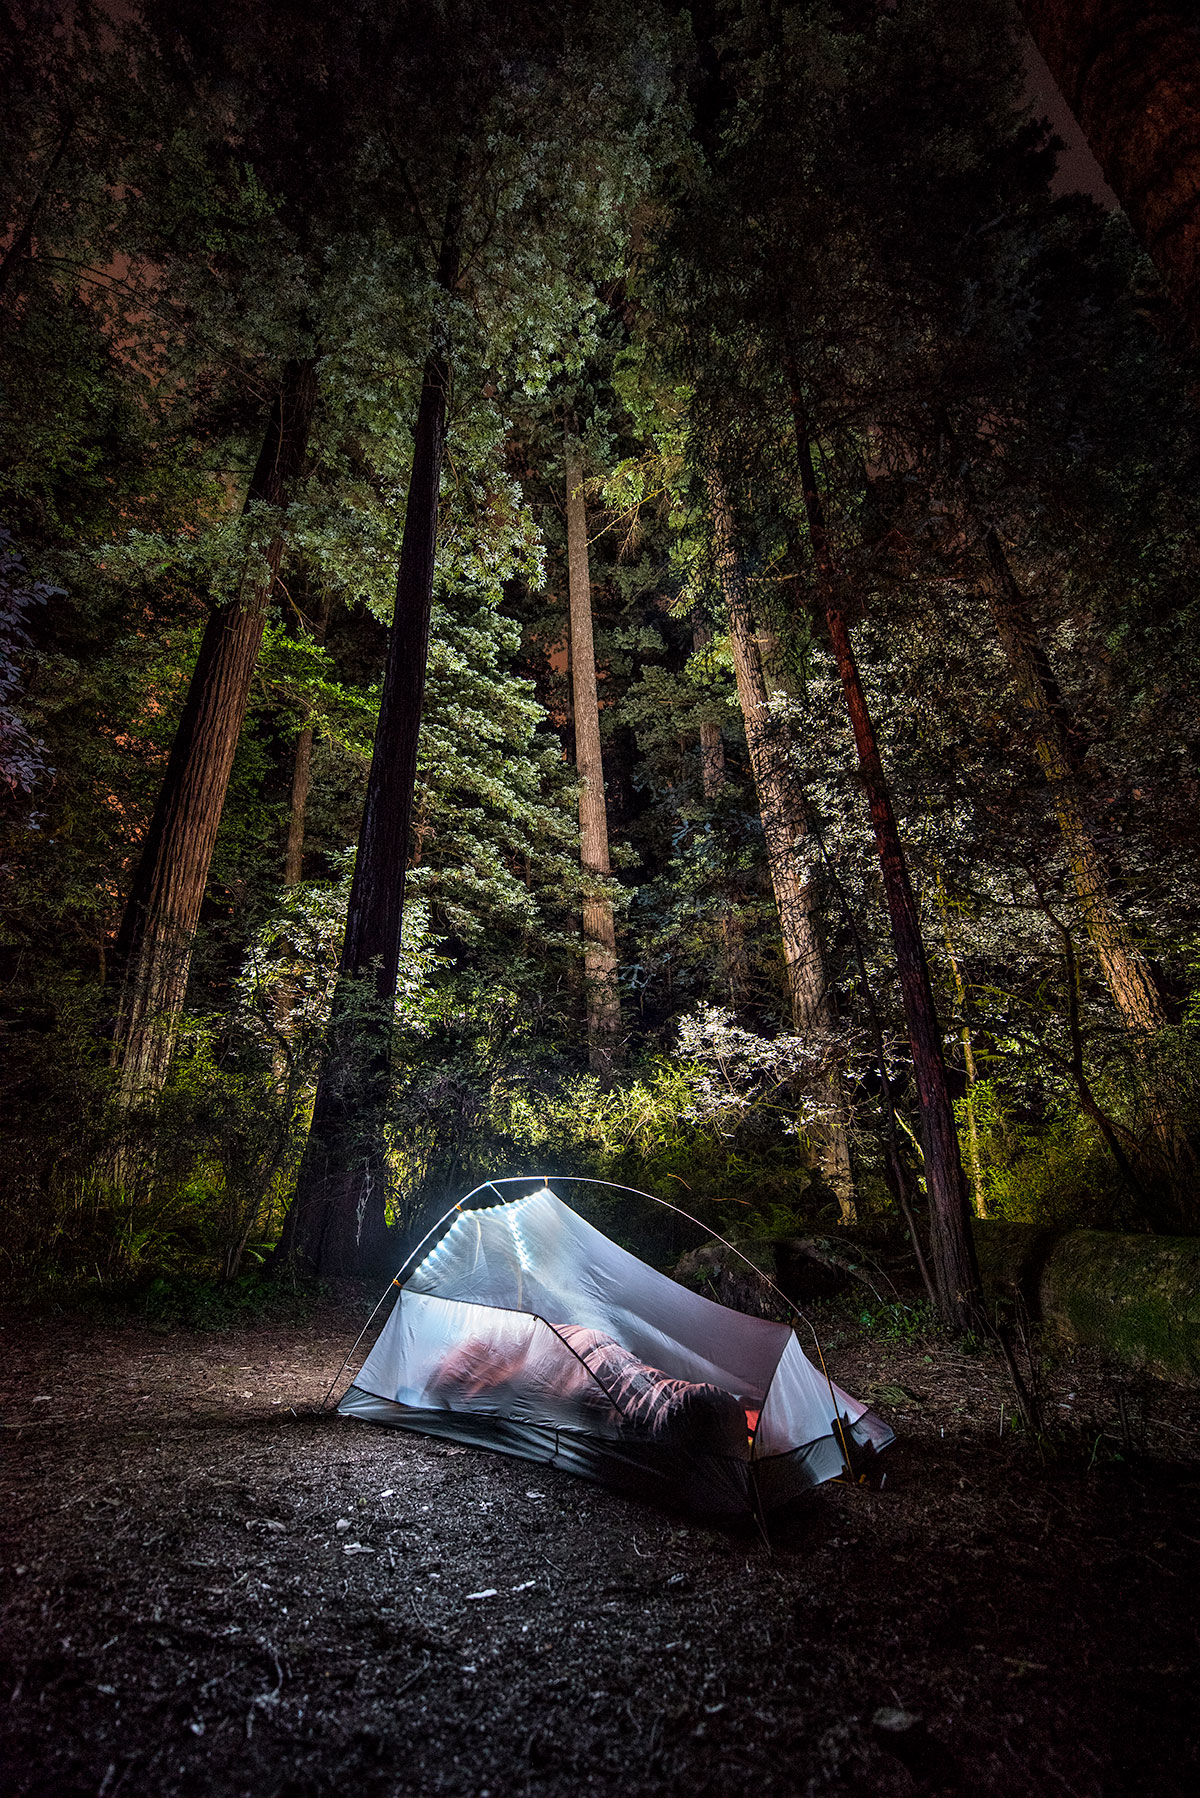 austin-trigg-redwood-national-state-park-tent-camping-night-forest.jpg